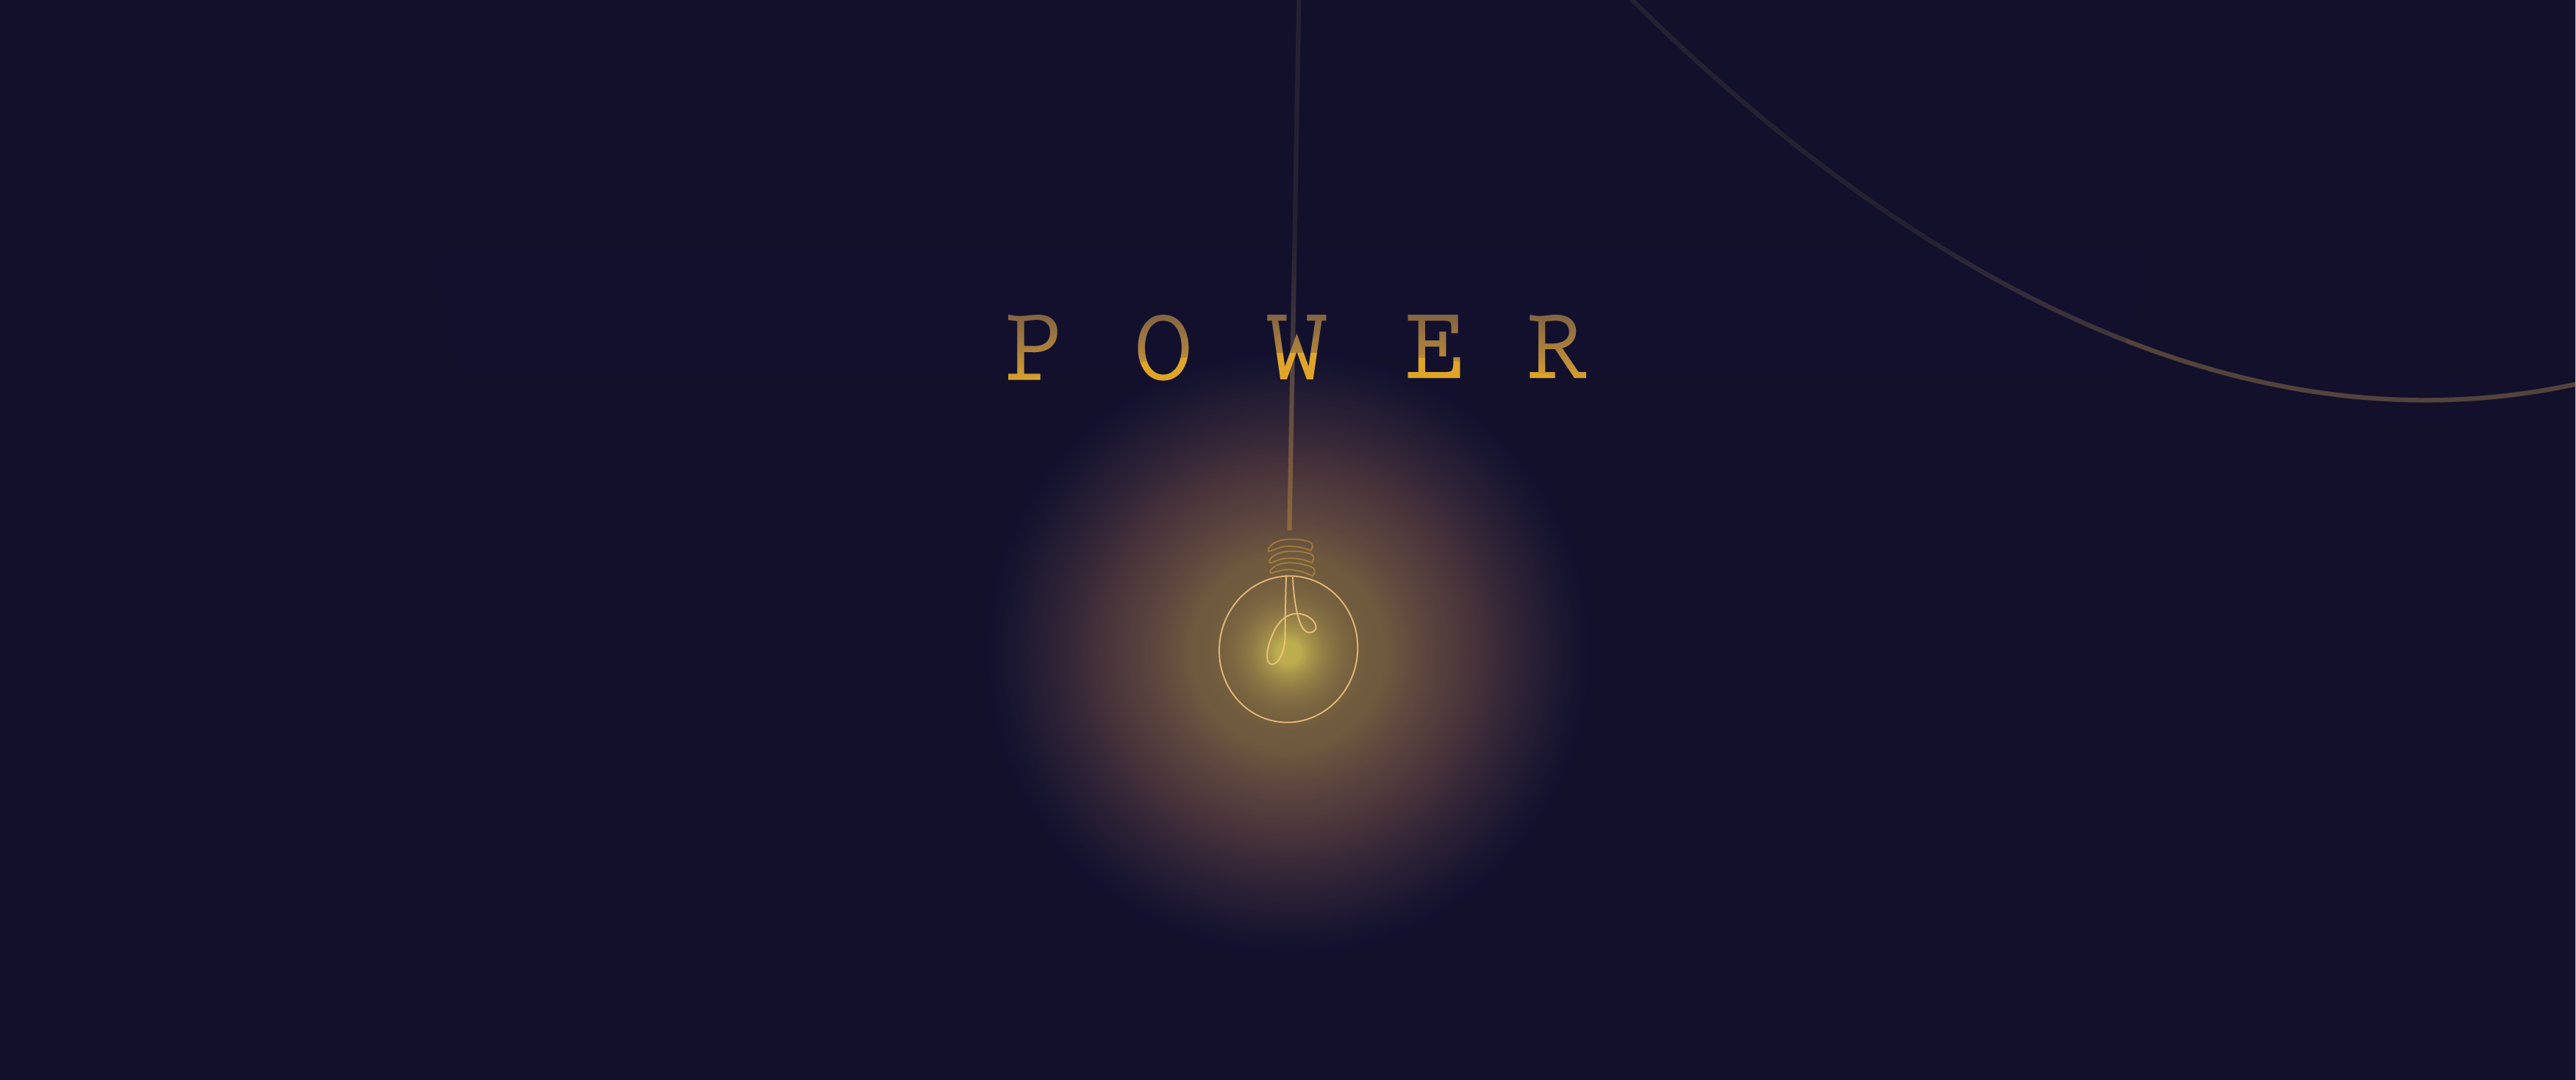 Power theme design with a lightbulb lit in darkness